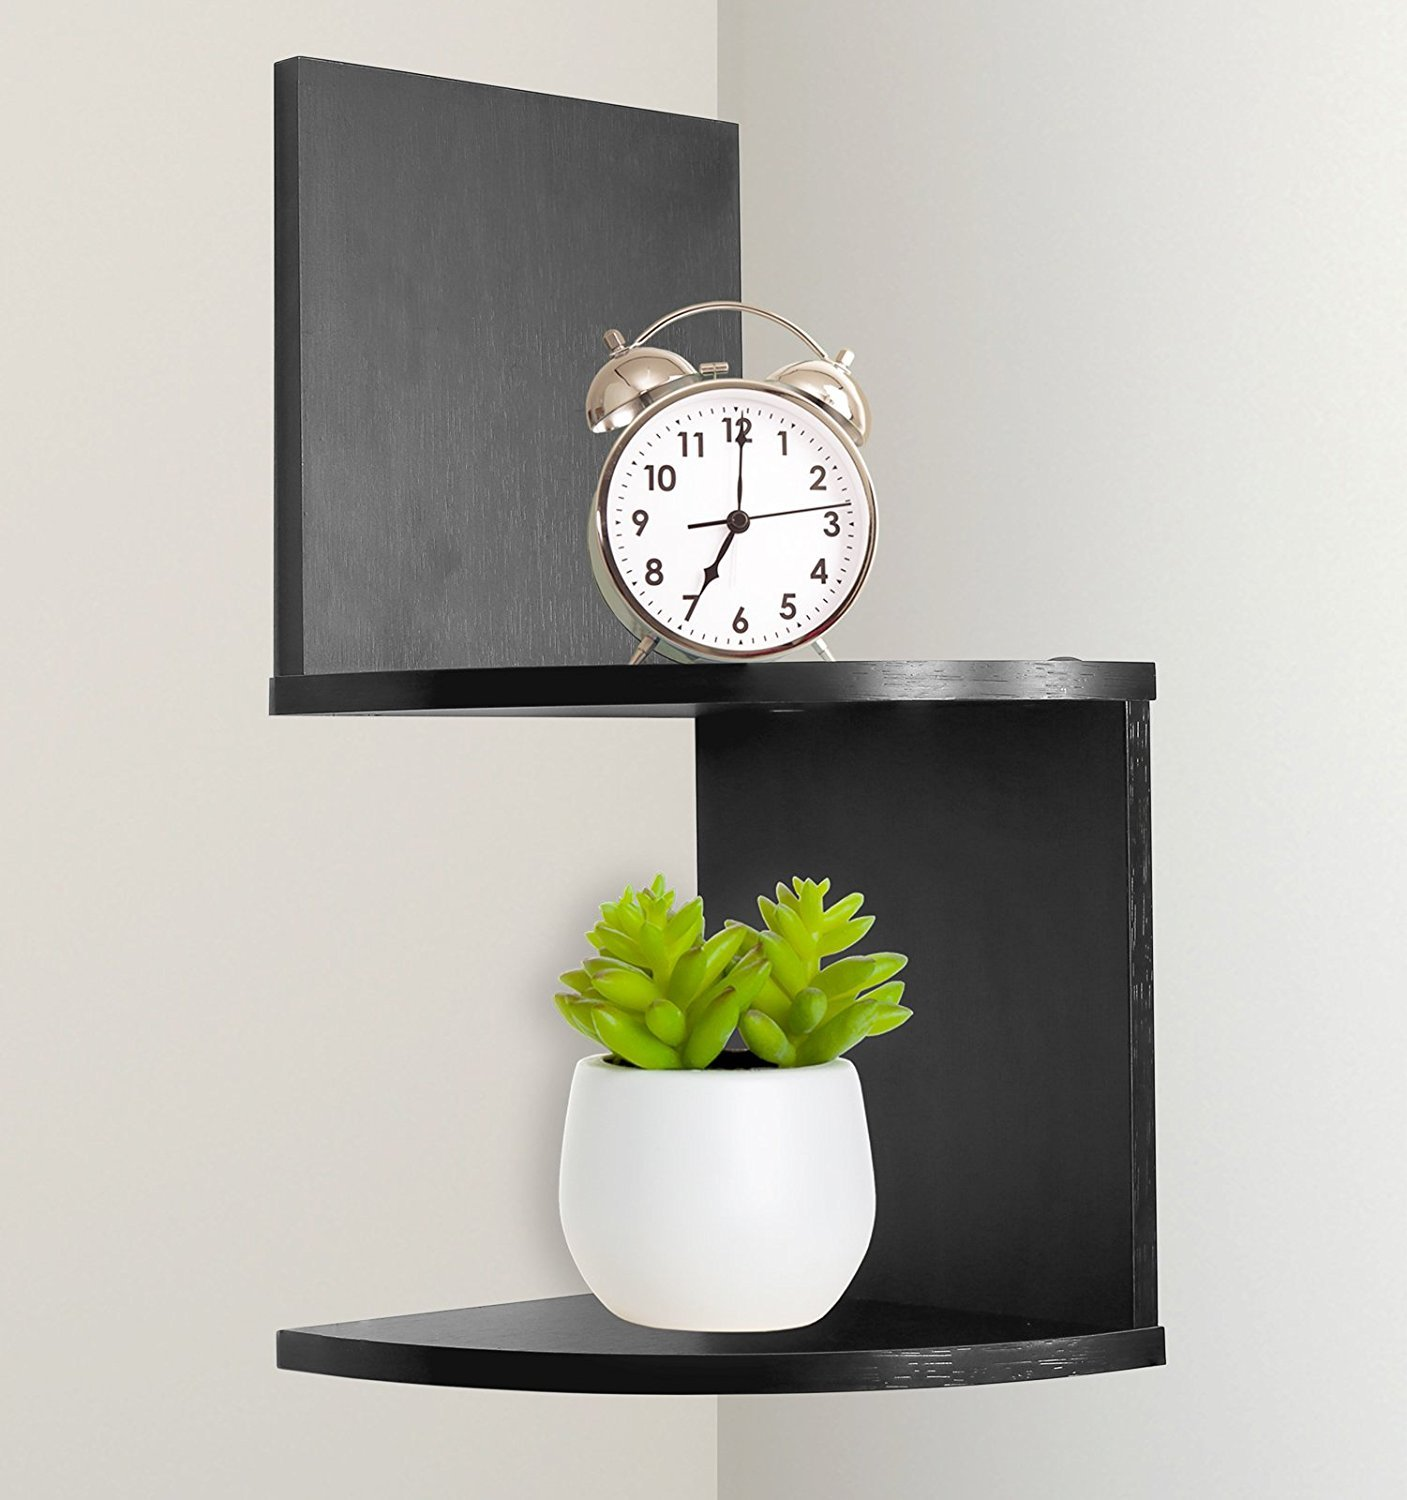 corner shelf wall mount home floating storage zig zag shelves espresso tier matte black bracket television stand inch concealed support screwfix coat shoe units rack unit work